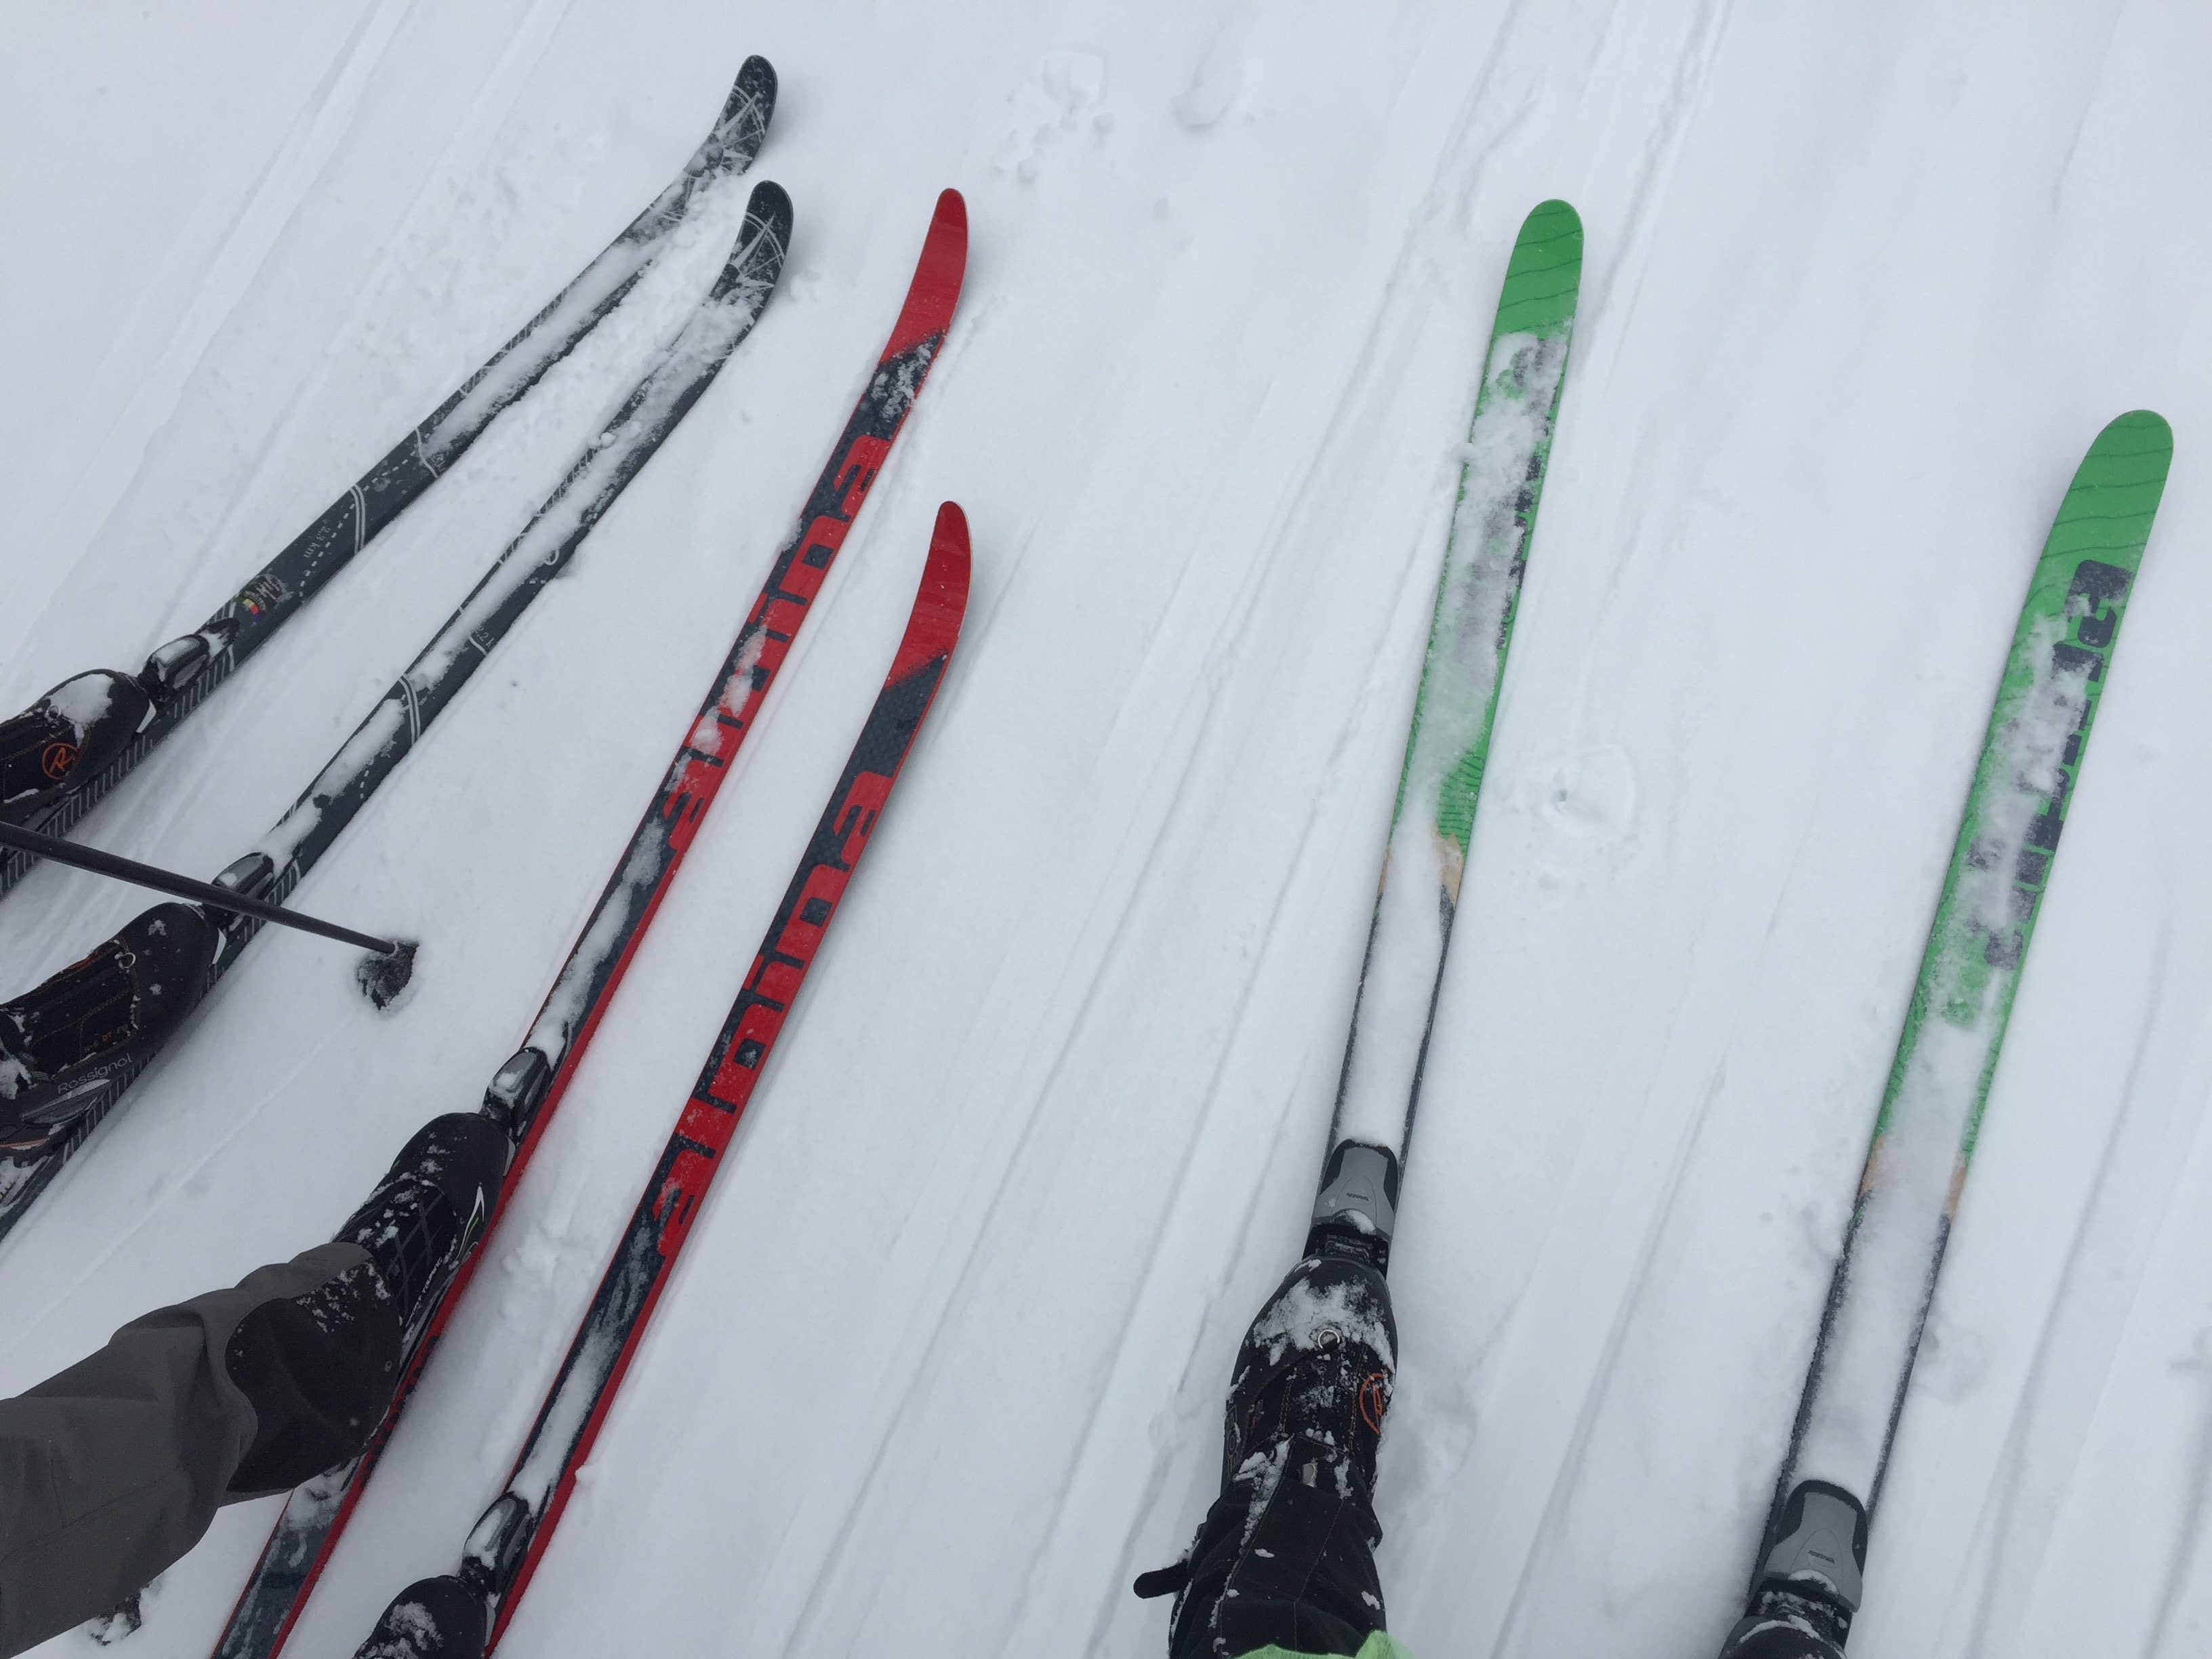 On Finding My Glide – Nordic Skiing in the La Sal Mountains